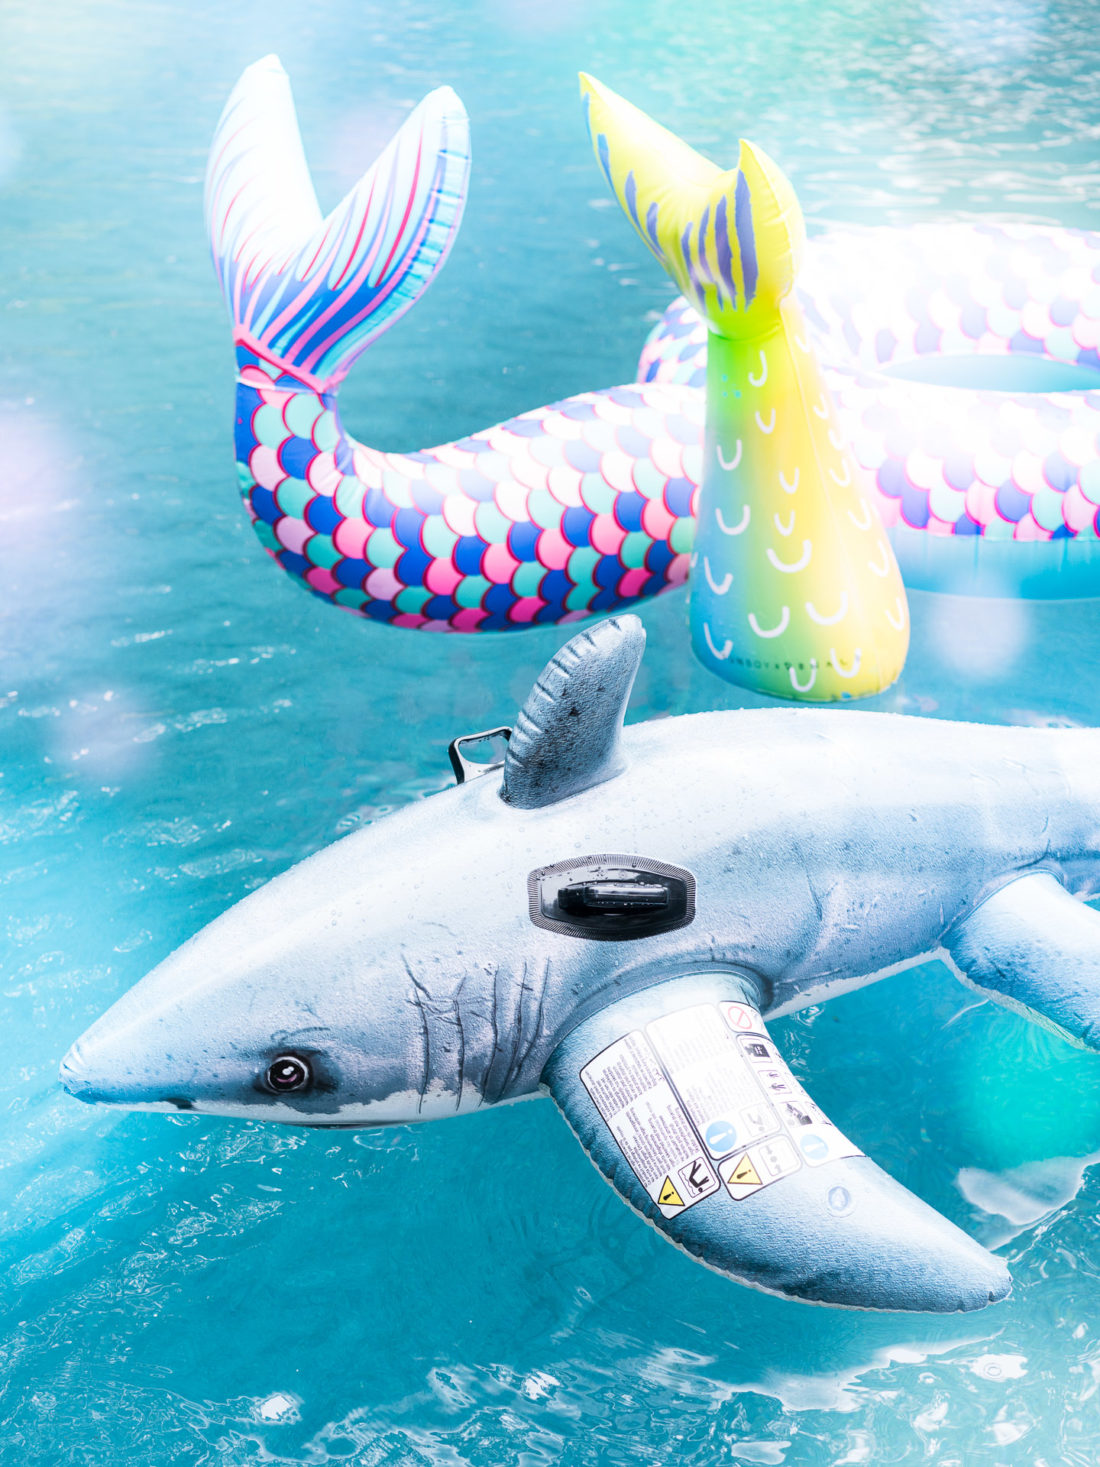 The pool floats at Marlowe Martino's third birthday party with a Mermaids vs. Sharks theme